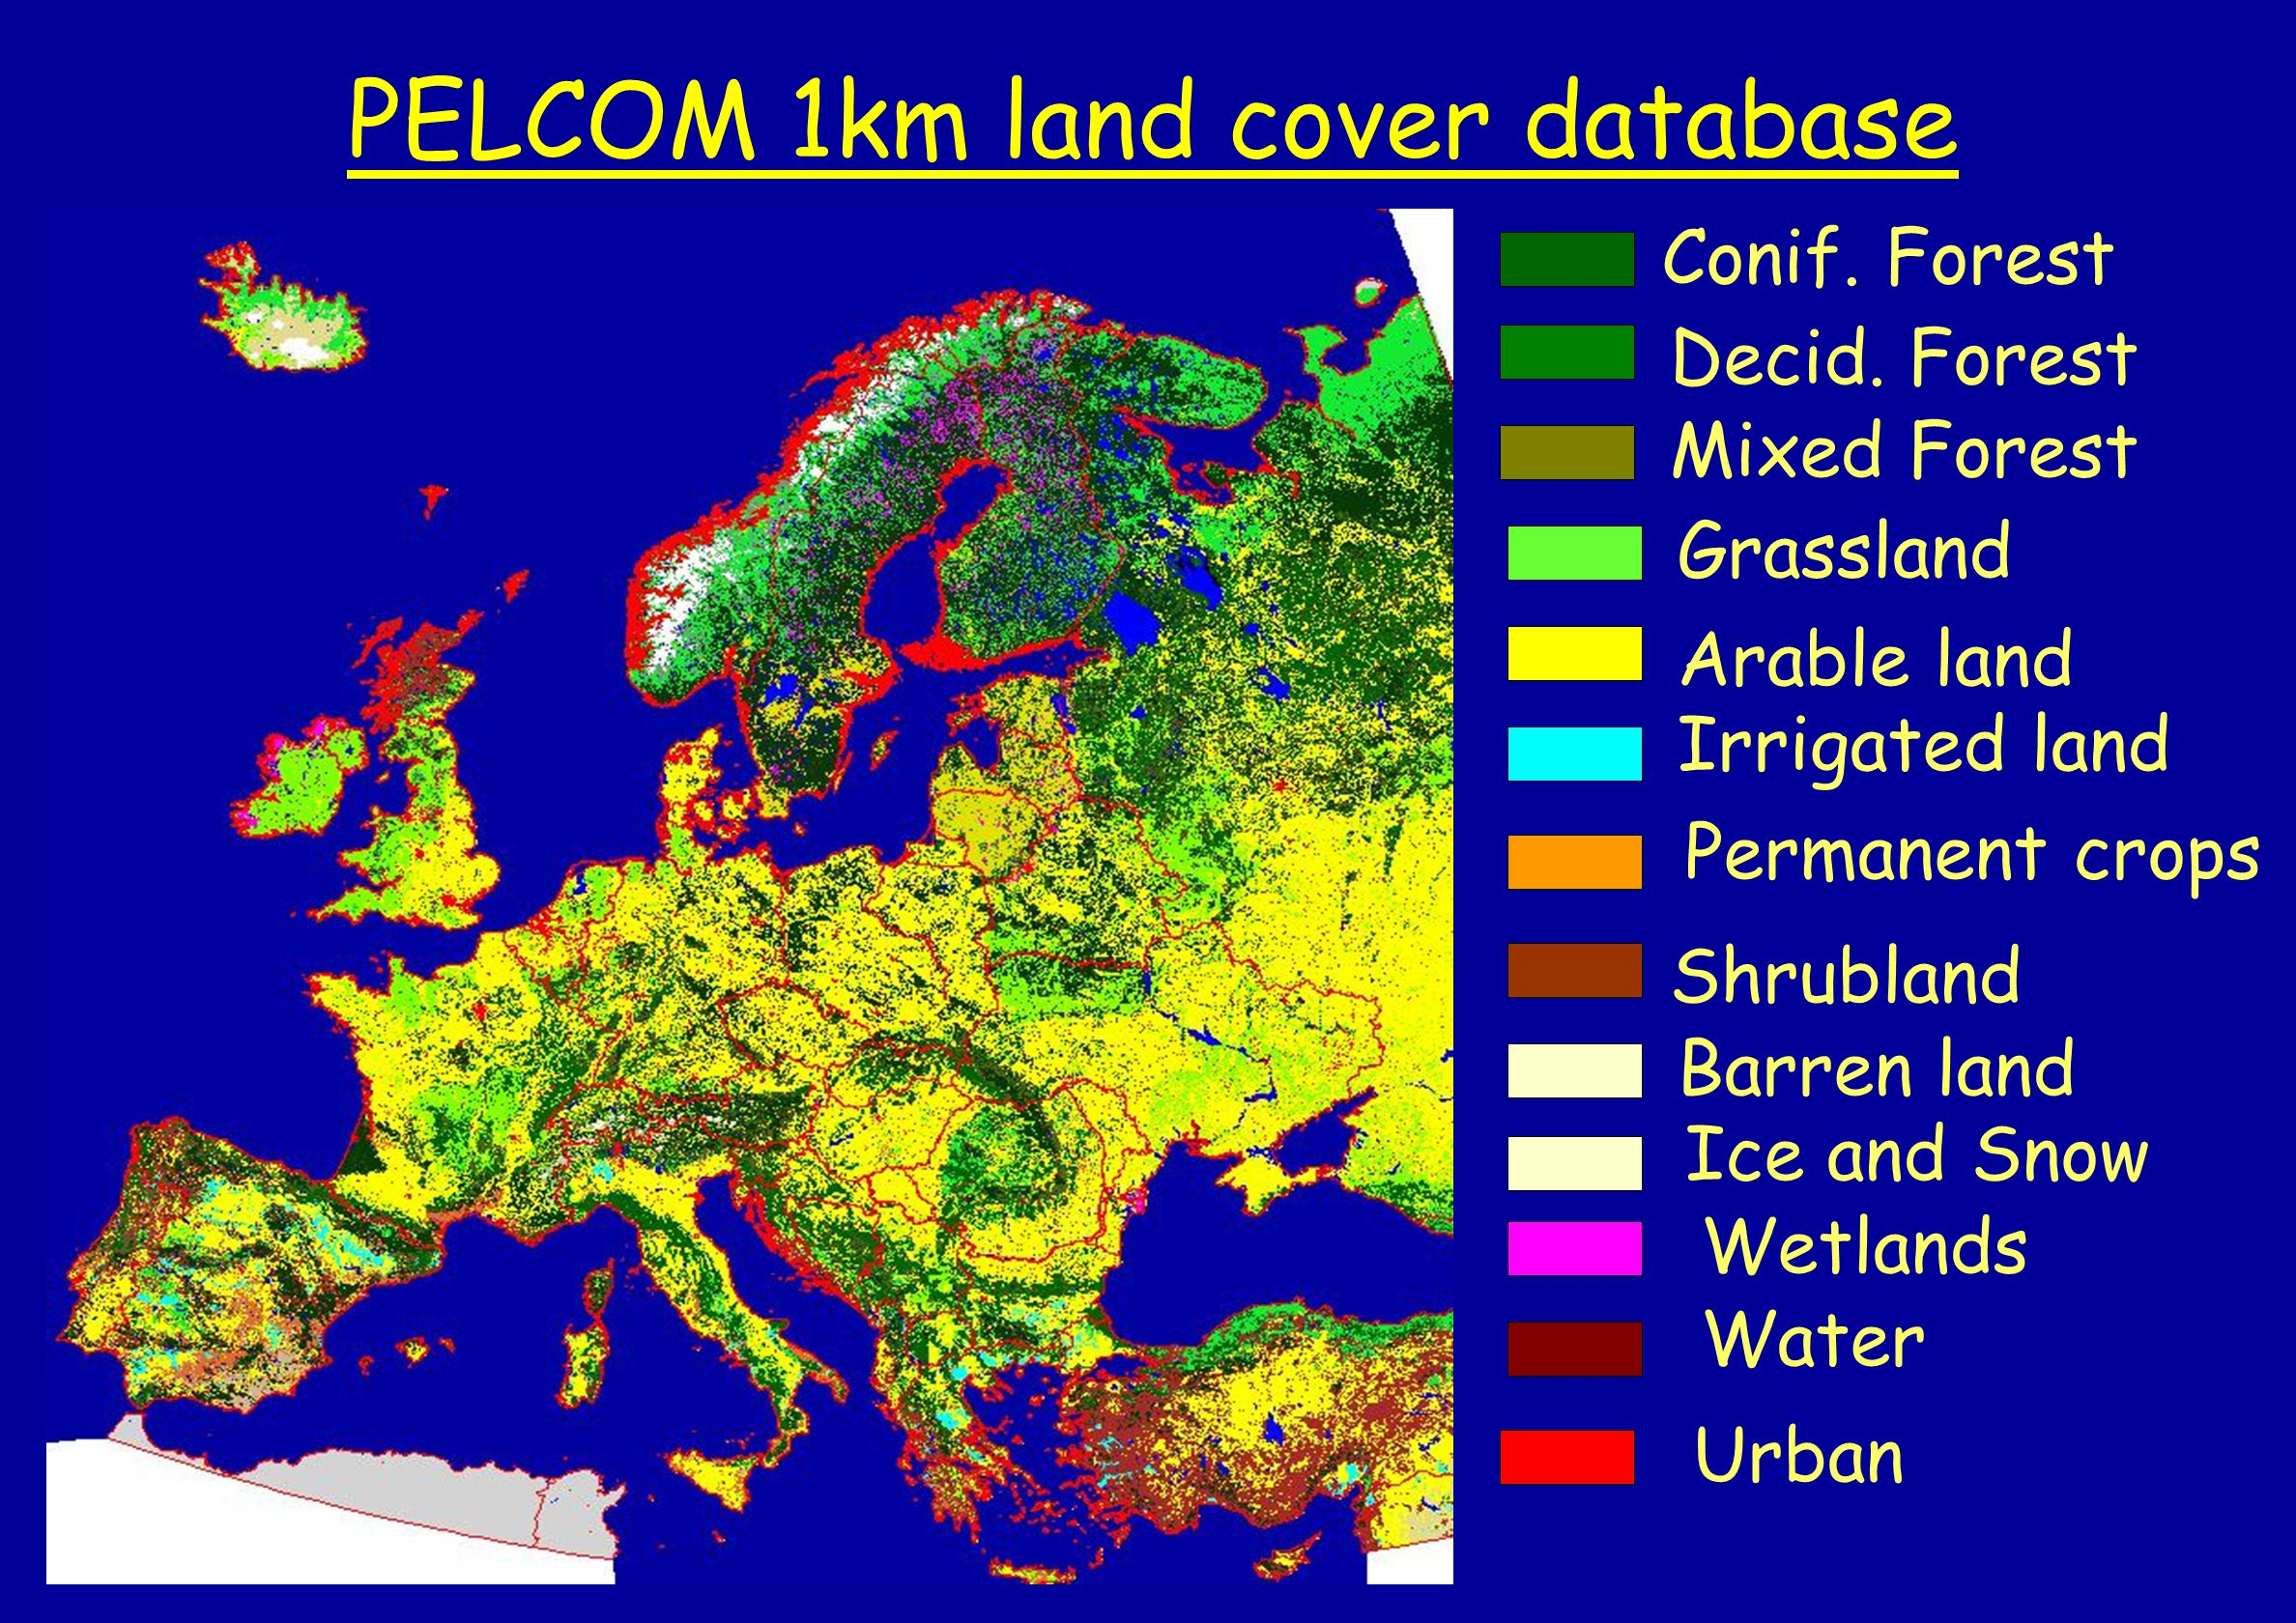 PELCOM 1km land cover database Conif. Forest Decid. Forest Mixed Forest Arable land Irrigated land Permanent crops Shrubland Barren land Ice and Snow